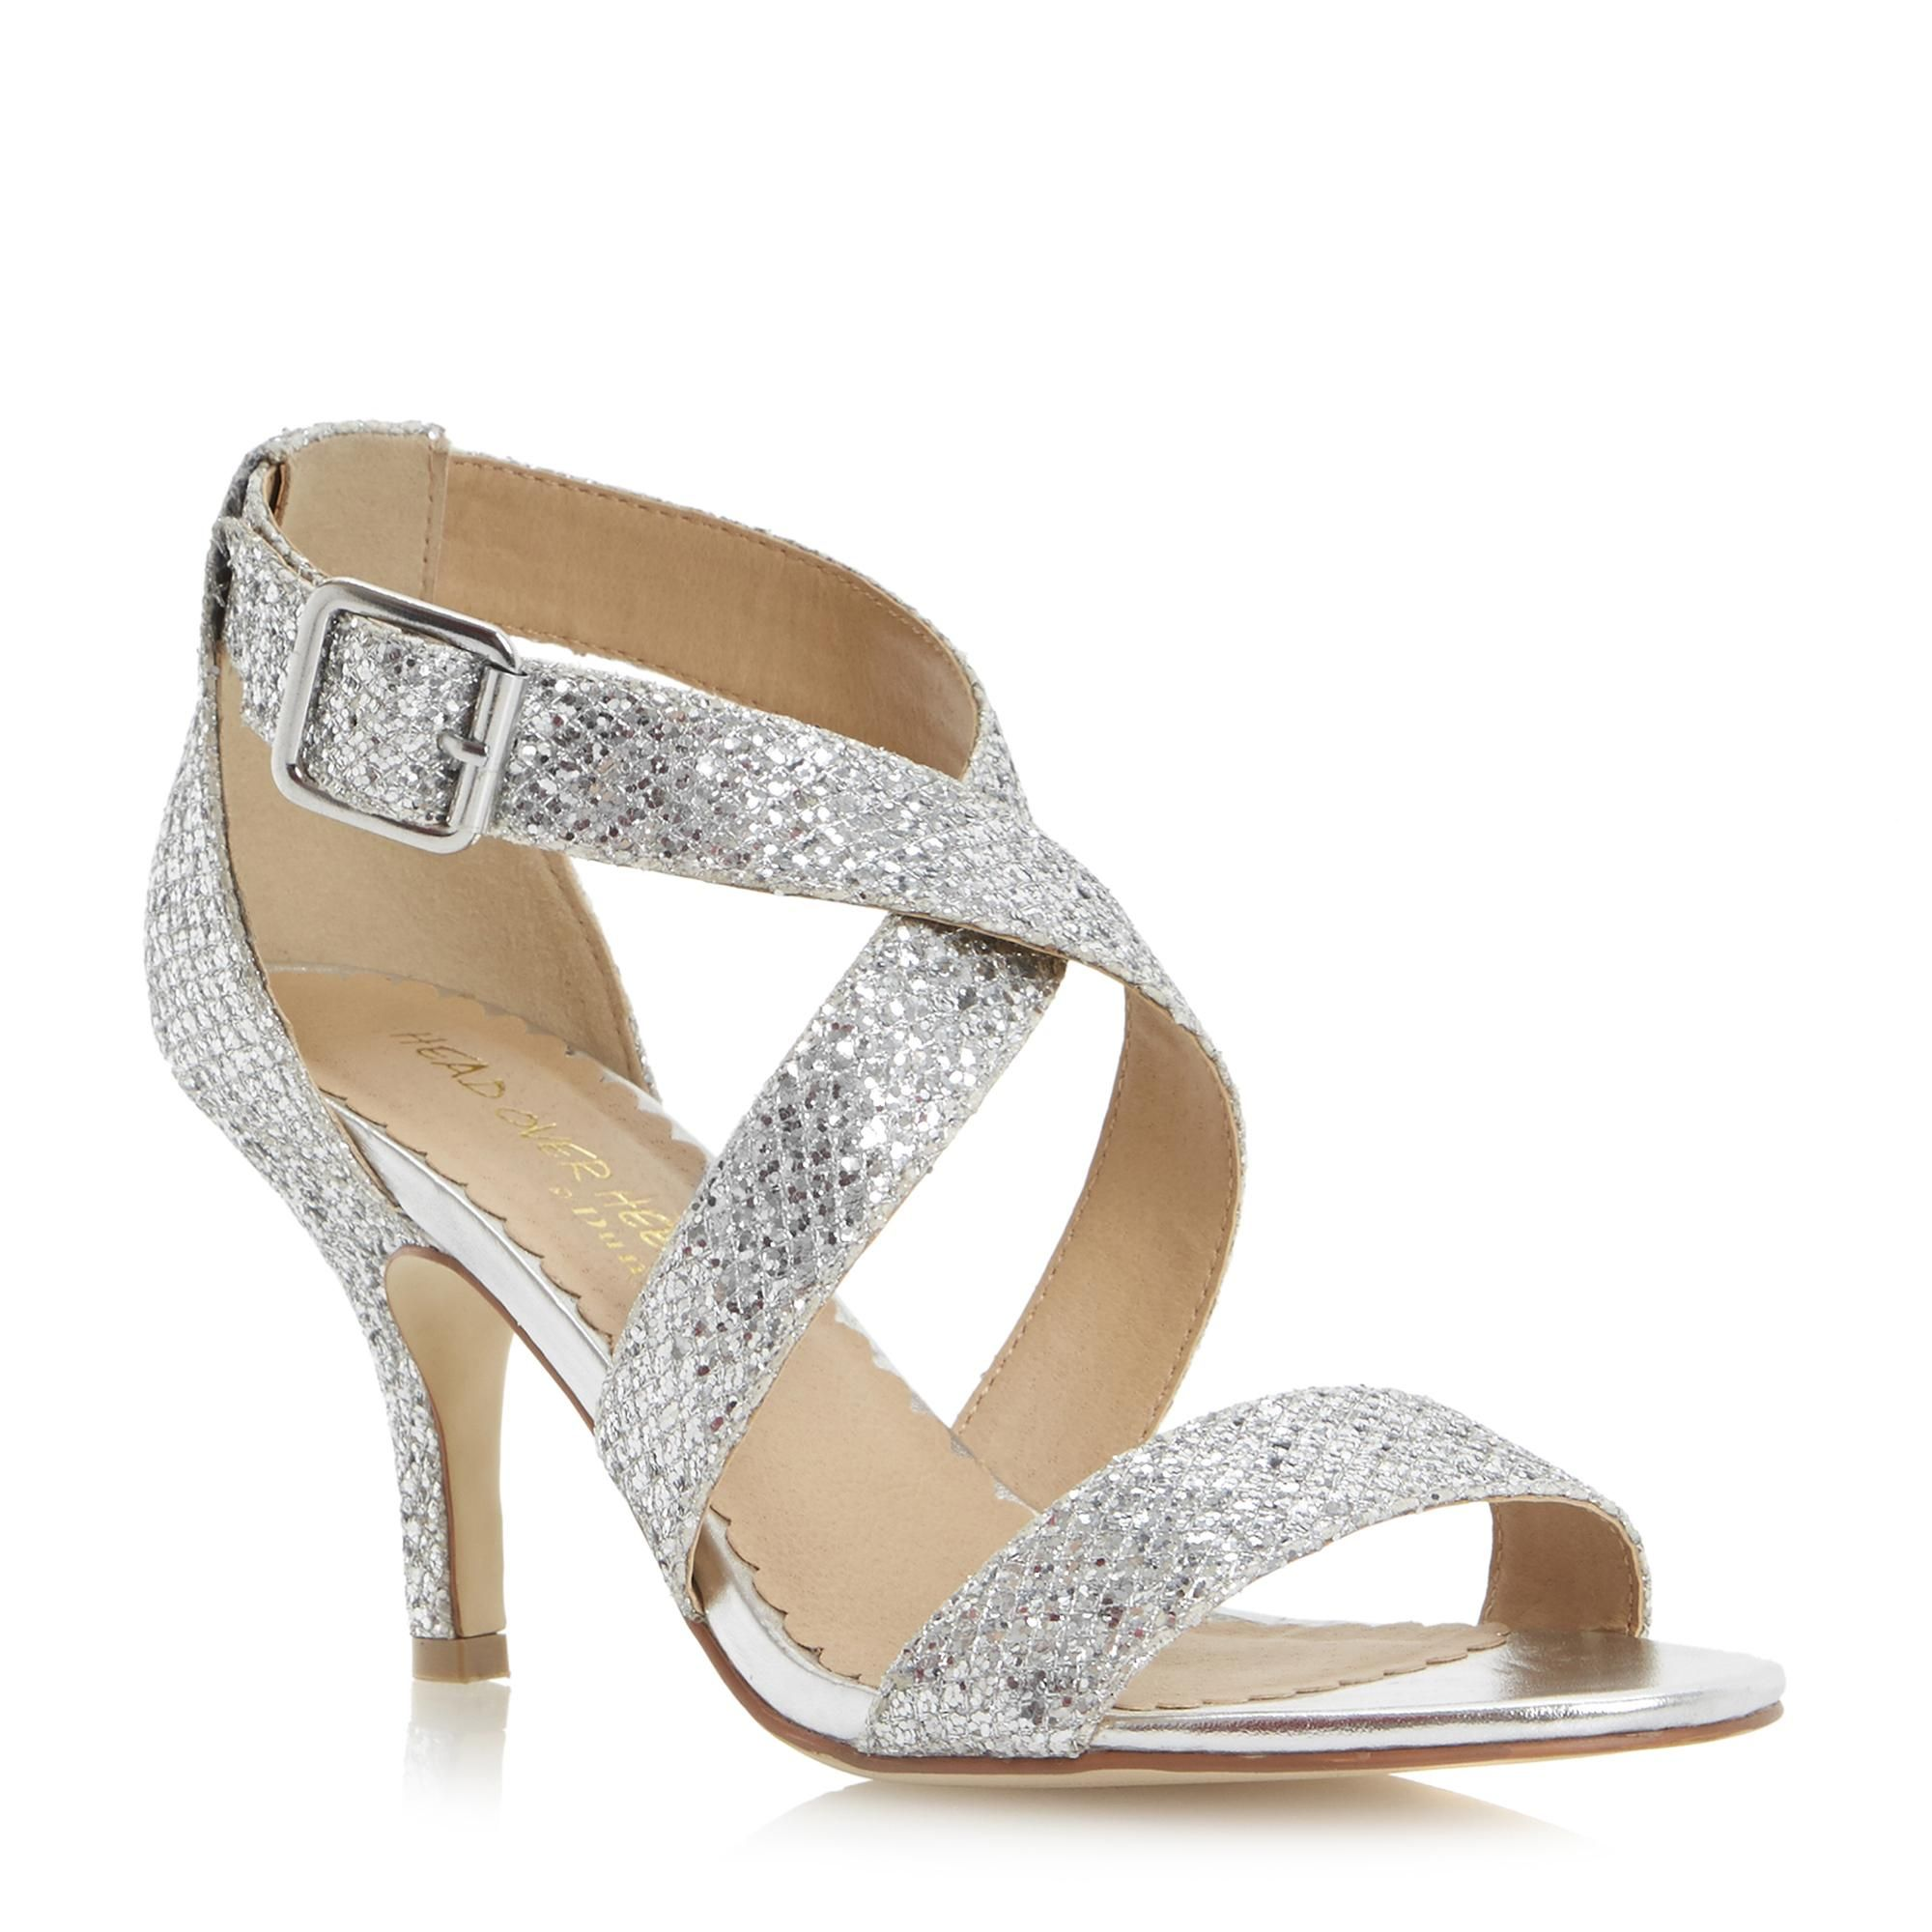 Head Over Heels Ladies Hailing Kitten Heel Glitter Crossover Strap Sandal Silver Dune S Silver Shoes Low Heel Silver Kitten Heels Silver Bridesmaid Shoes